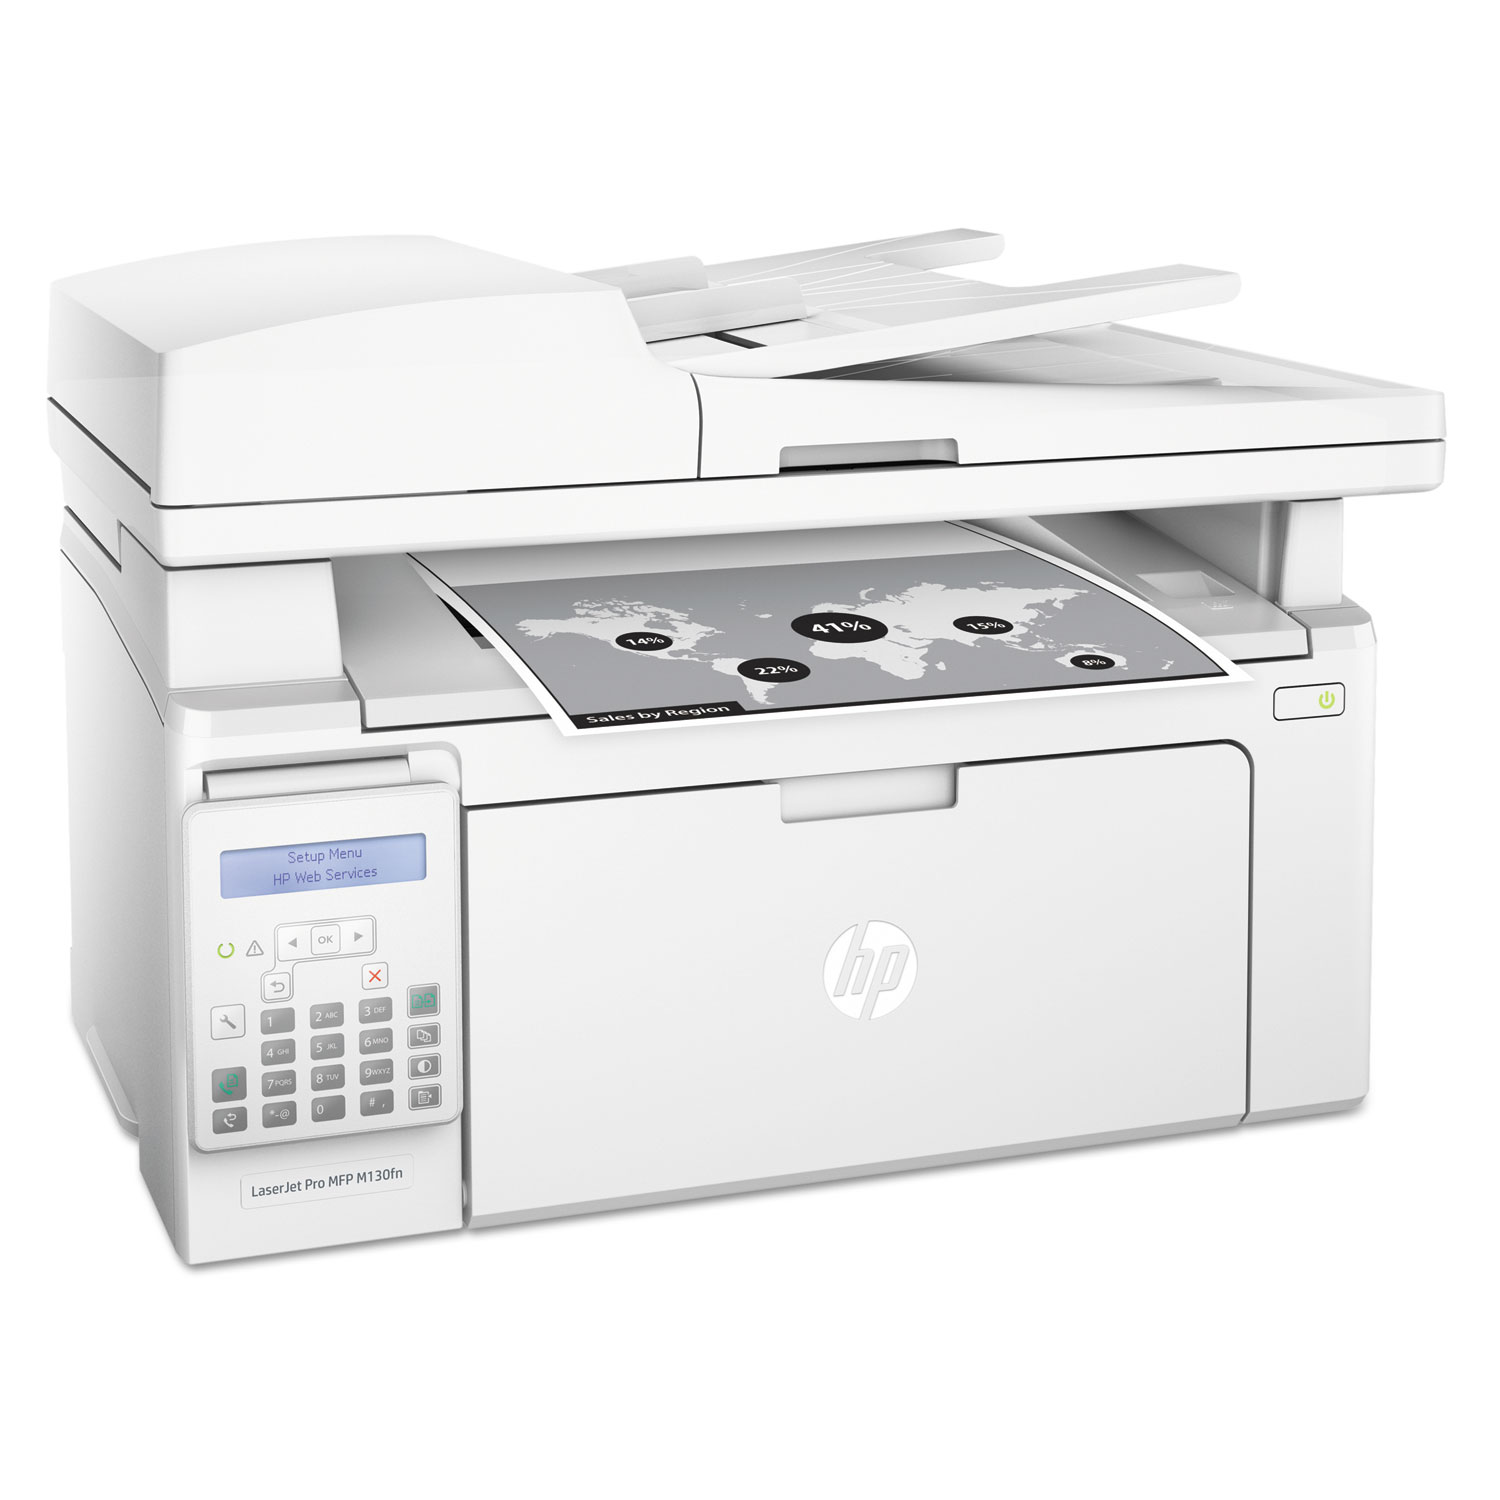 LaserJet Pro MFP M130fn Multifunction Laser Printer, Copy/Fax/Print/Scan